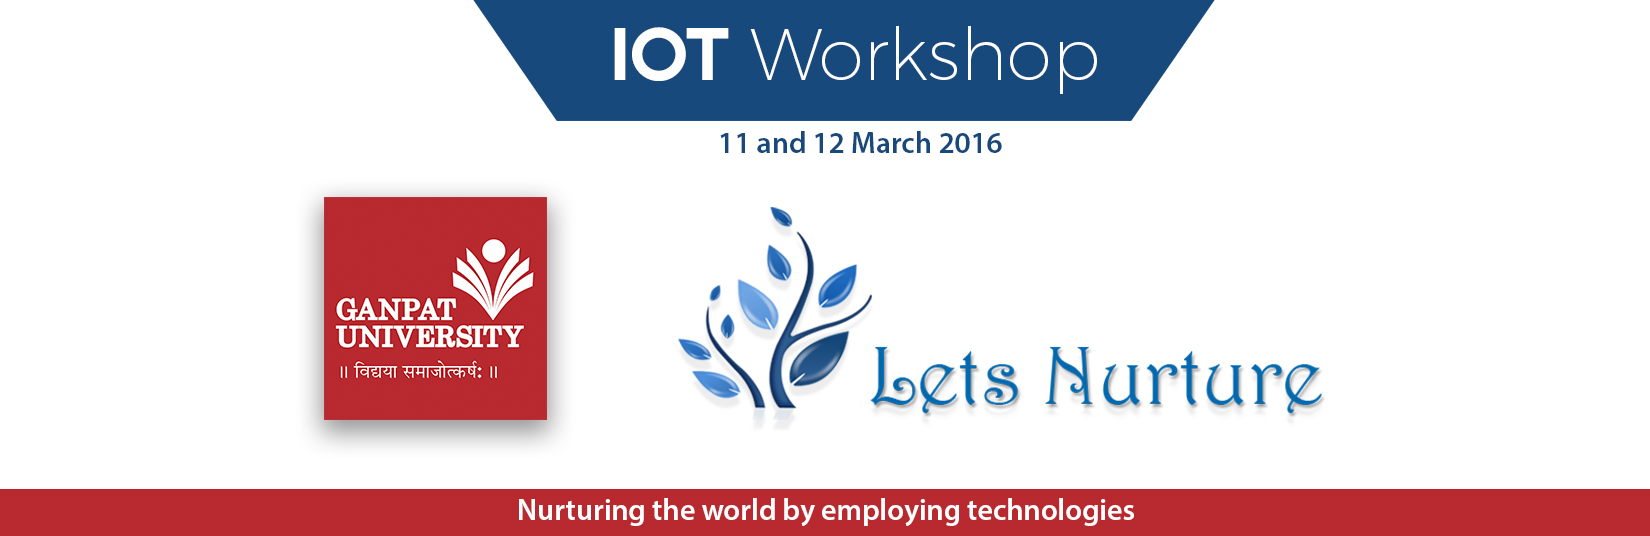 Workshop on Internet of Things at Ganpat University, Ahmedabad